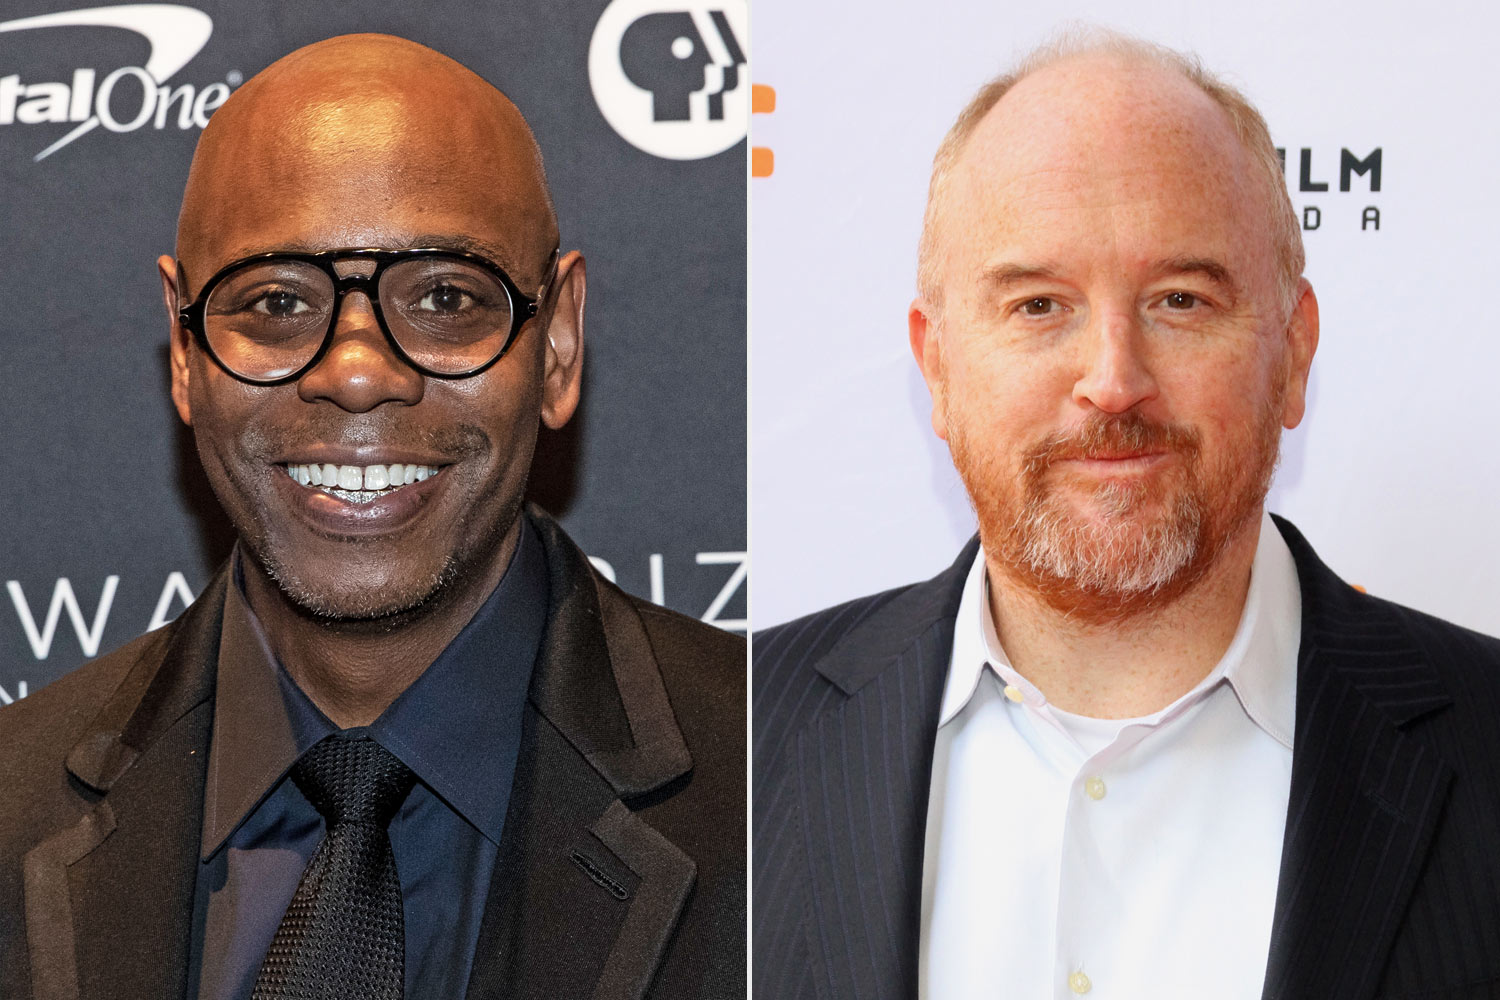 Dave Chappelle and Louis C.K.